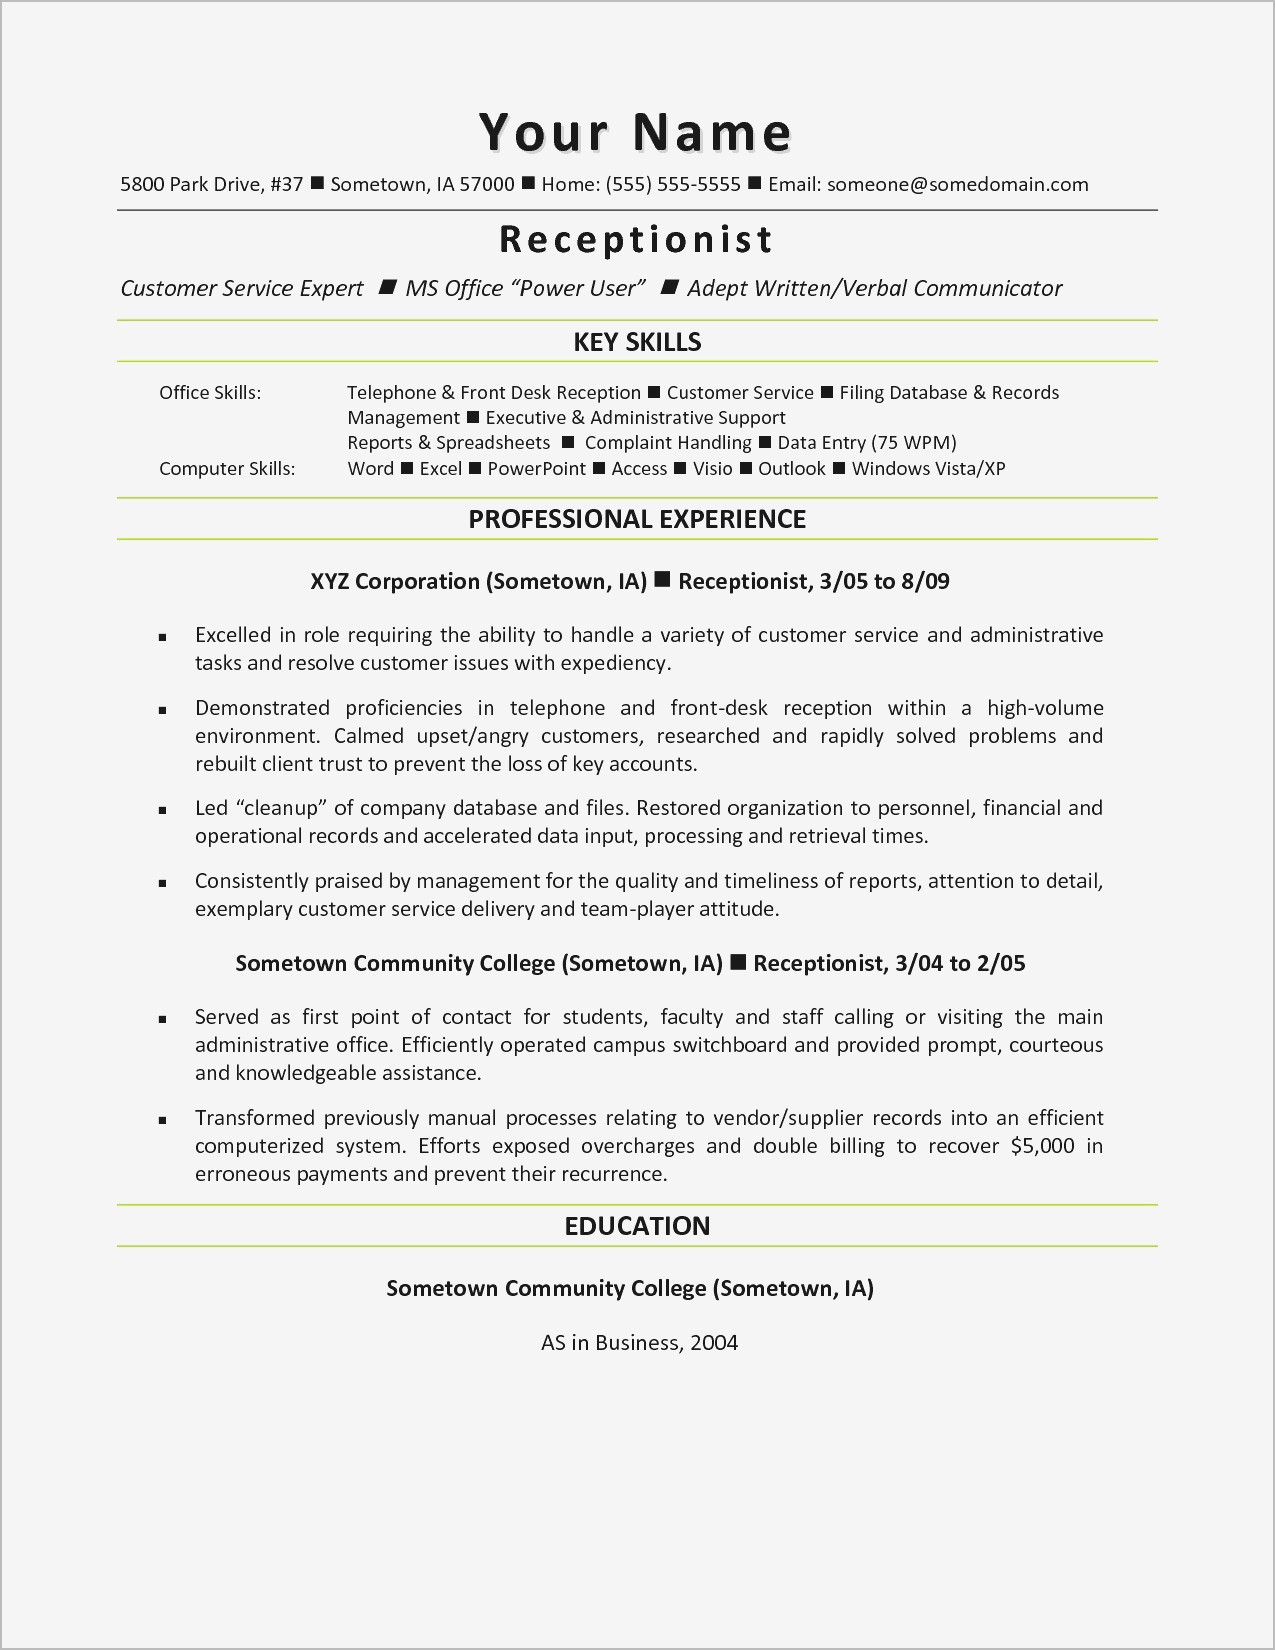 Receptionist Cover Letter Template Samples Letter Template Collection